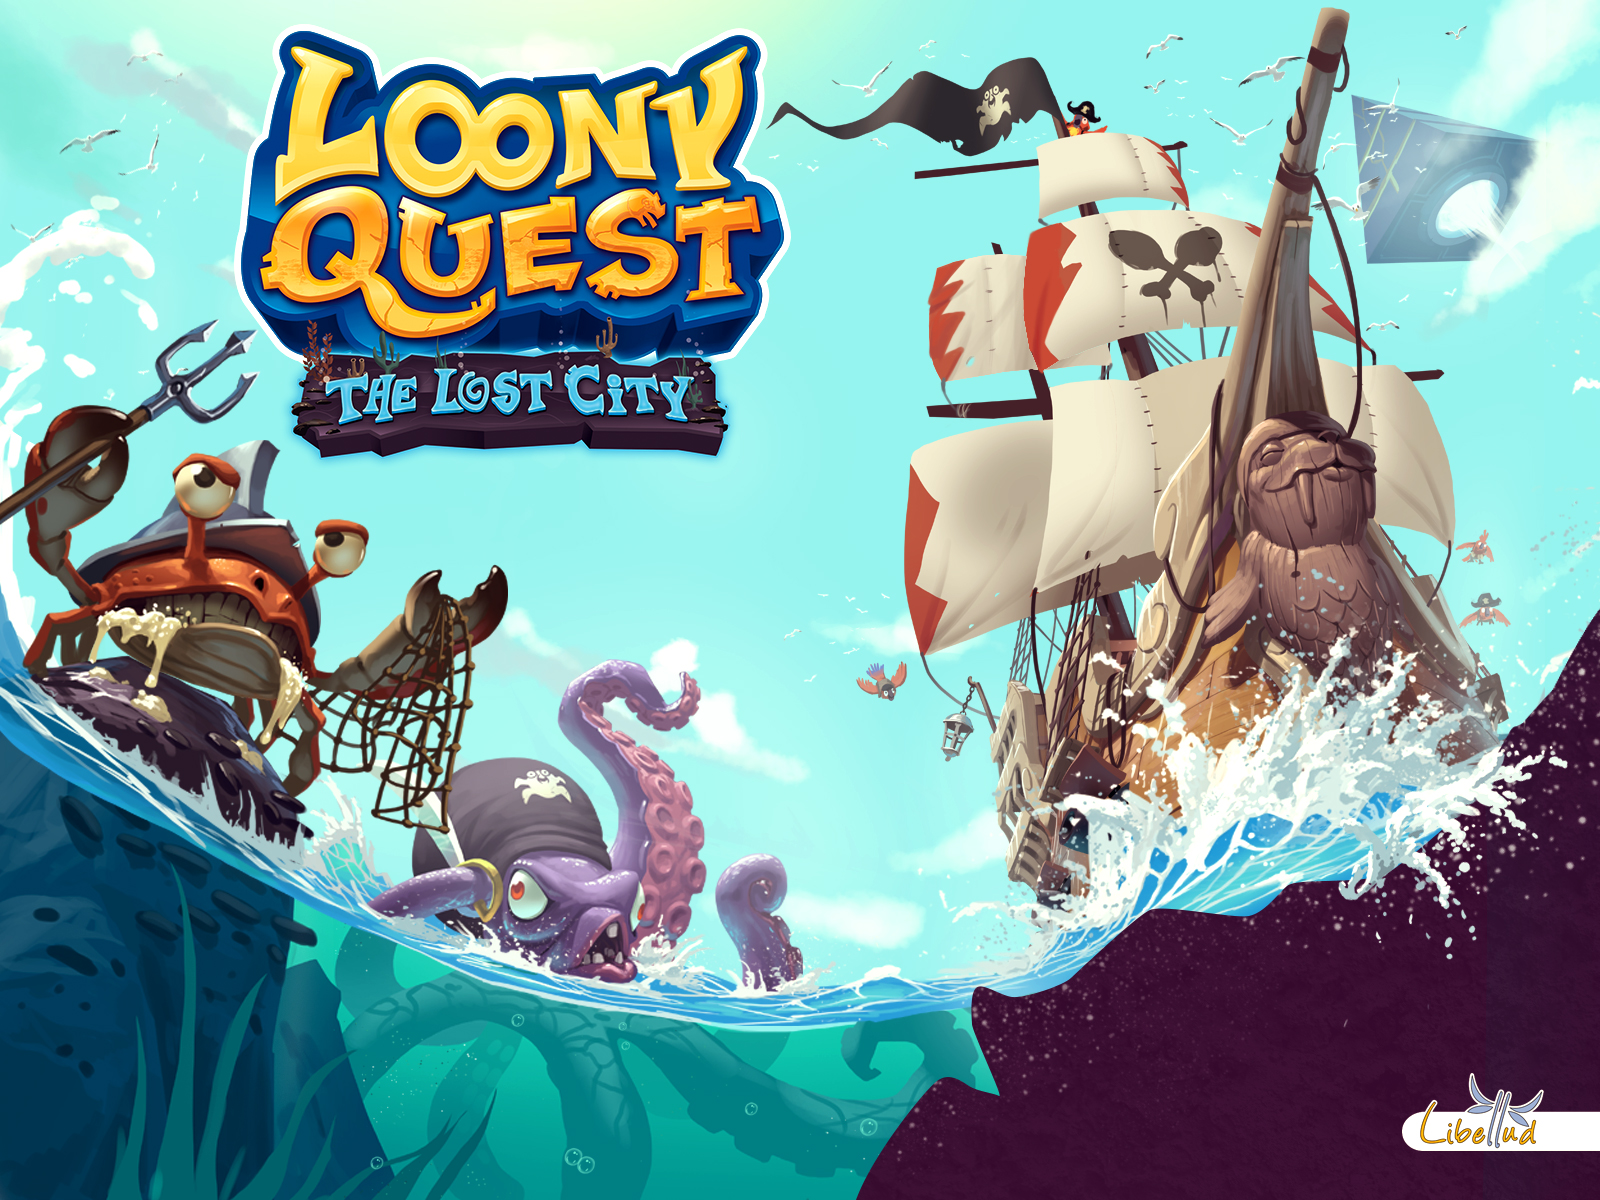 LOONY_QUEST_the-lost-city-1600x1200